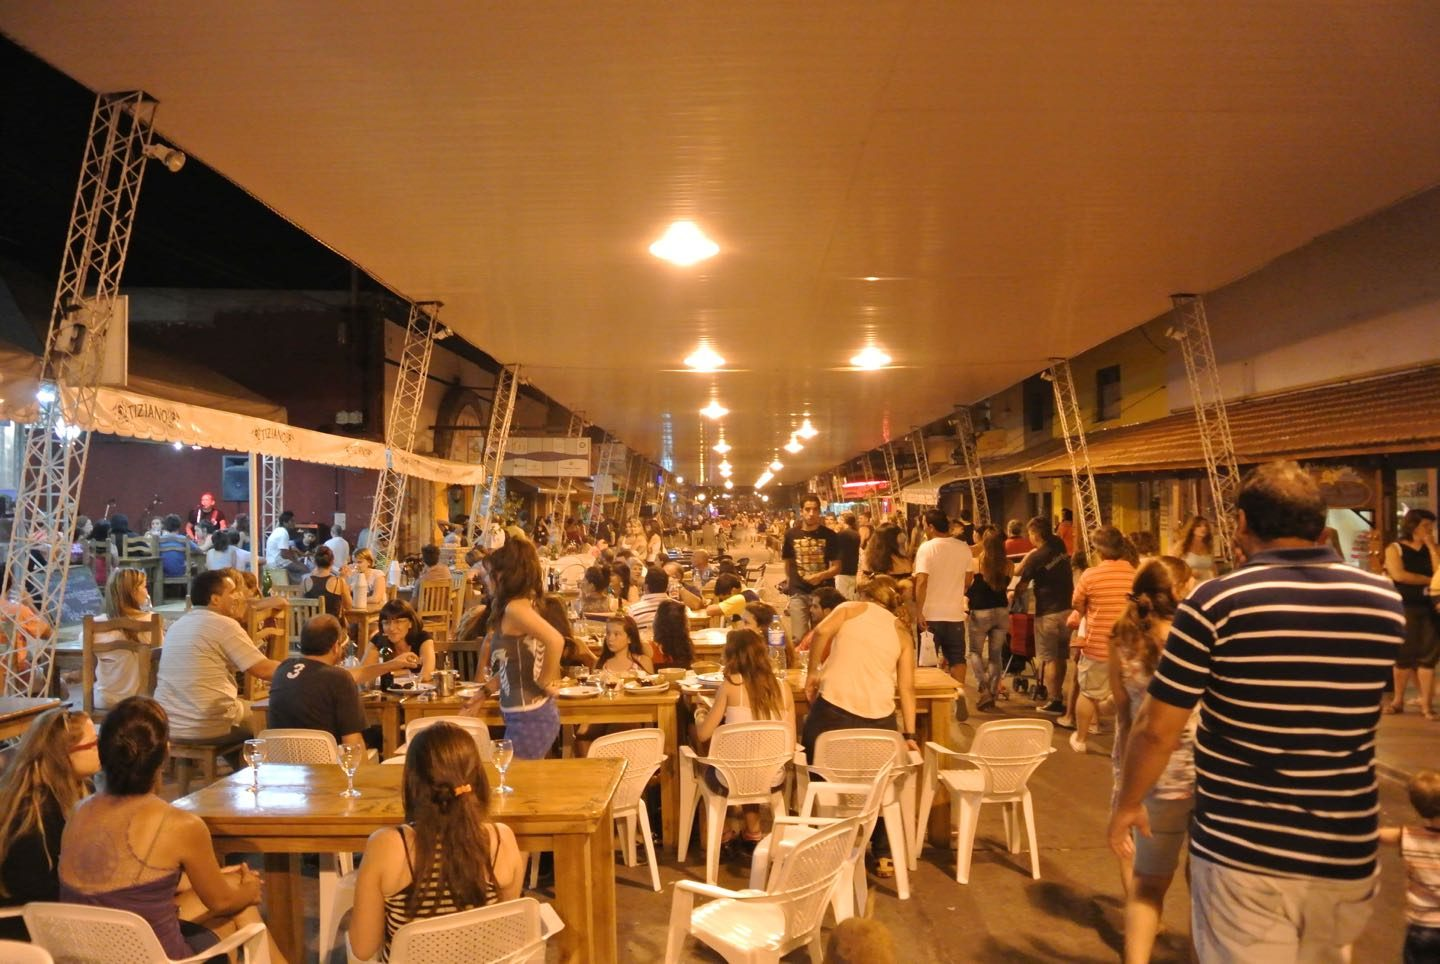 """La Techada"" at night, the commercial street of Capilla del Monte. The most touristic area in town, full of bars, restaurants and tour agencies."